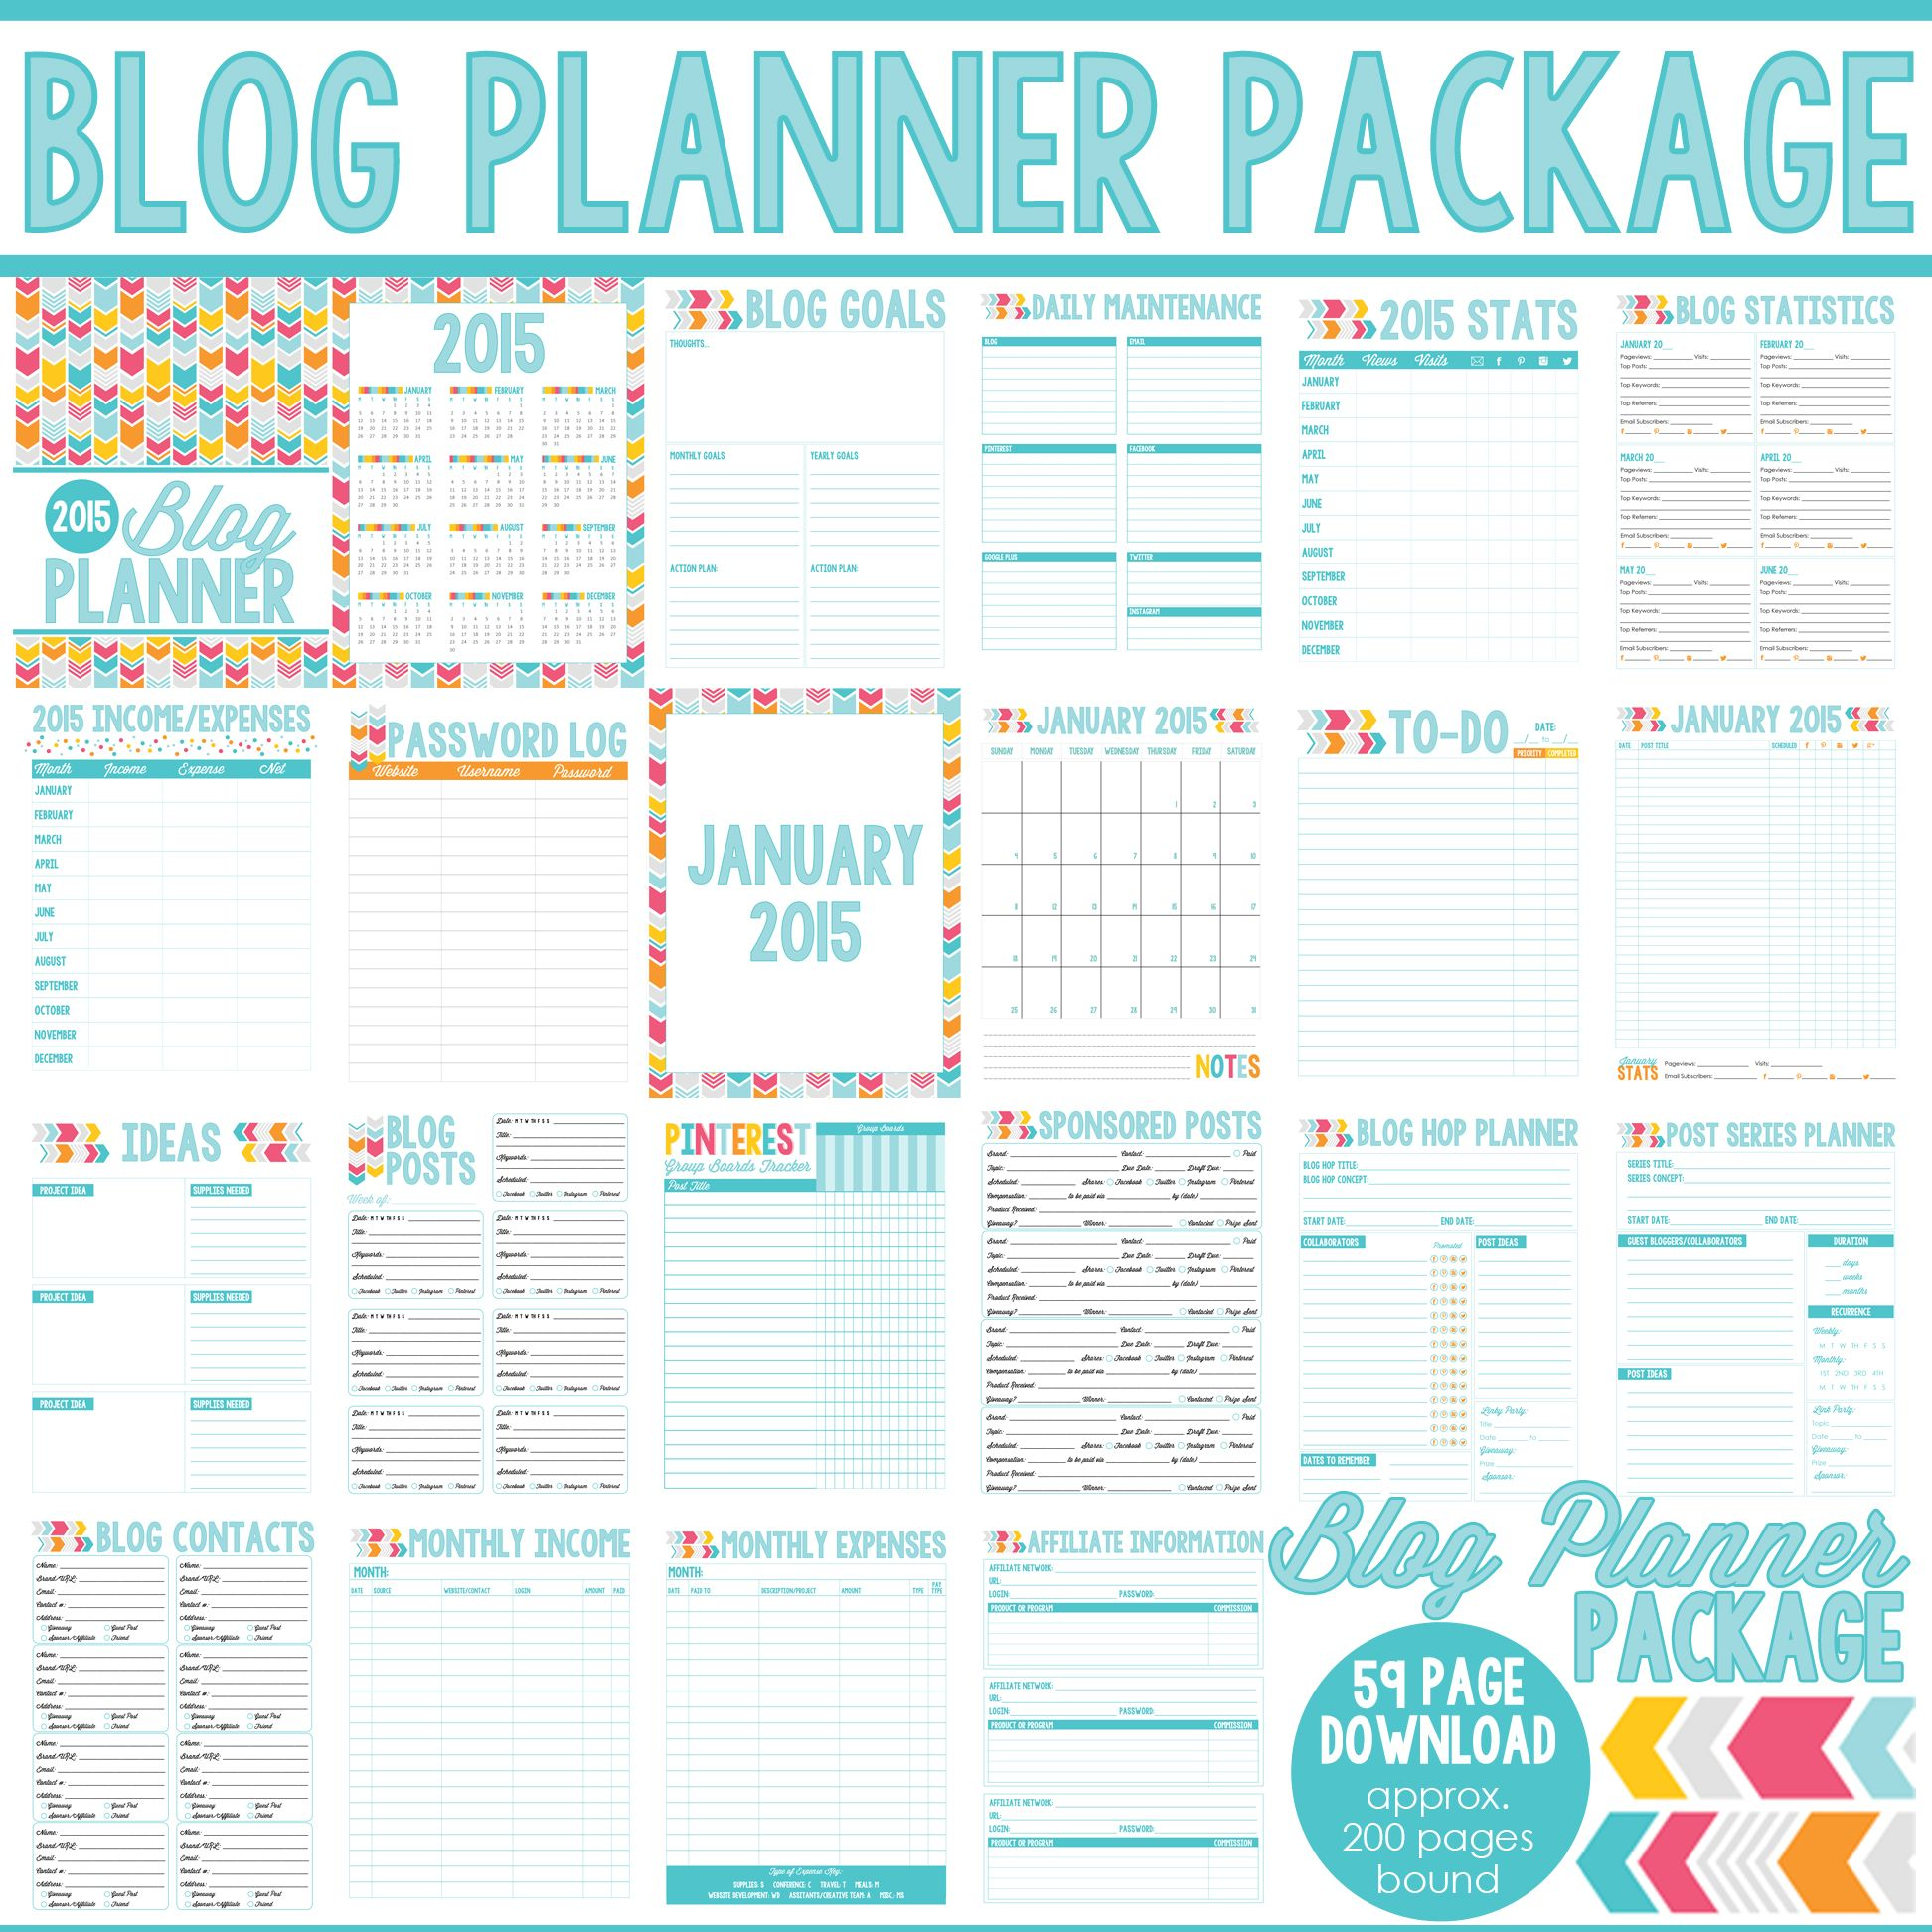 Blog Planner Daily Planner And Menu Planner  Blog Planner